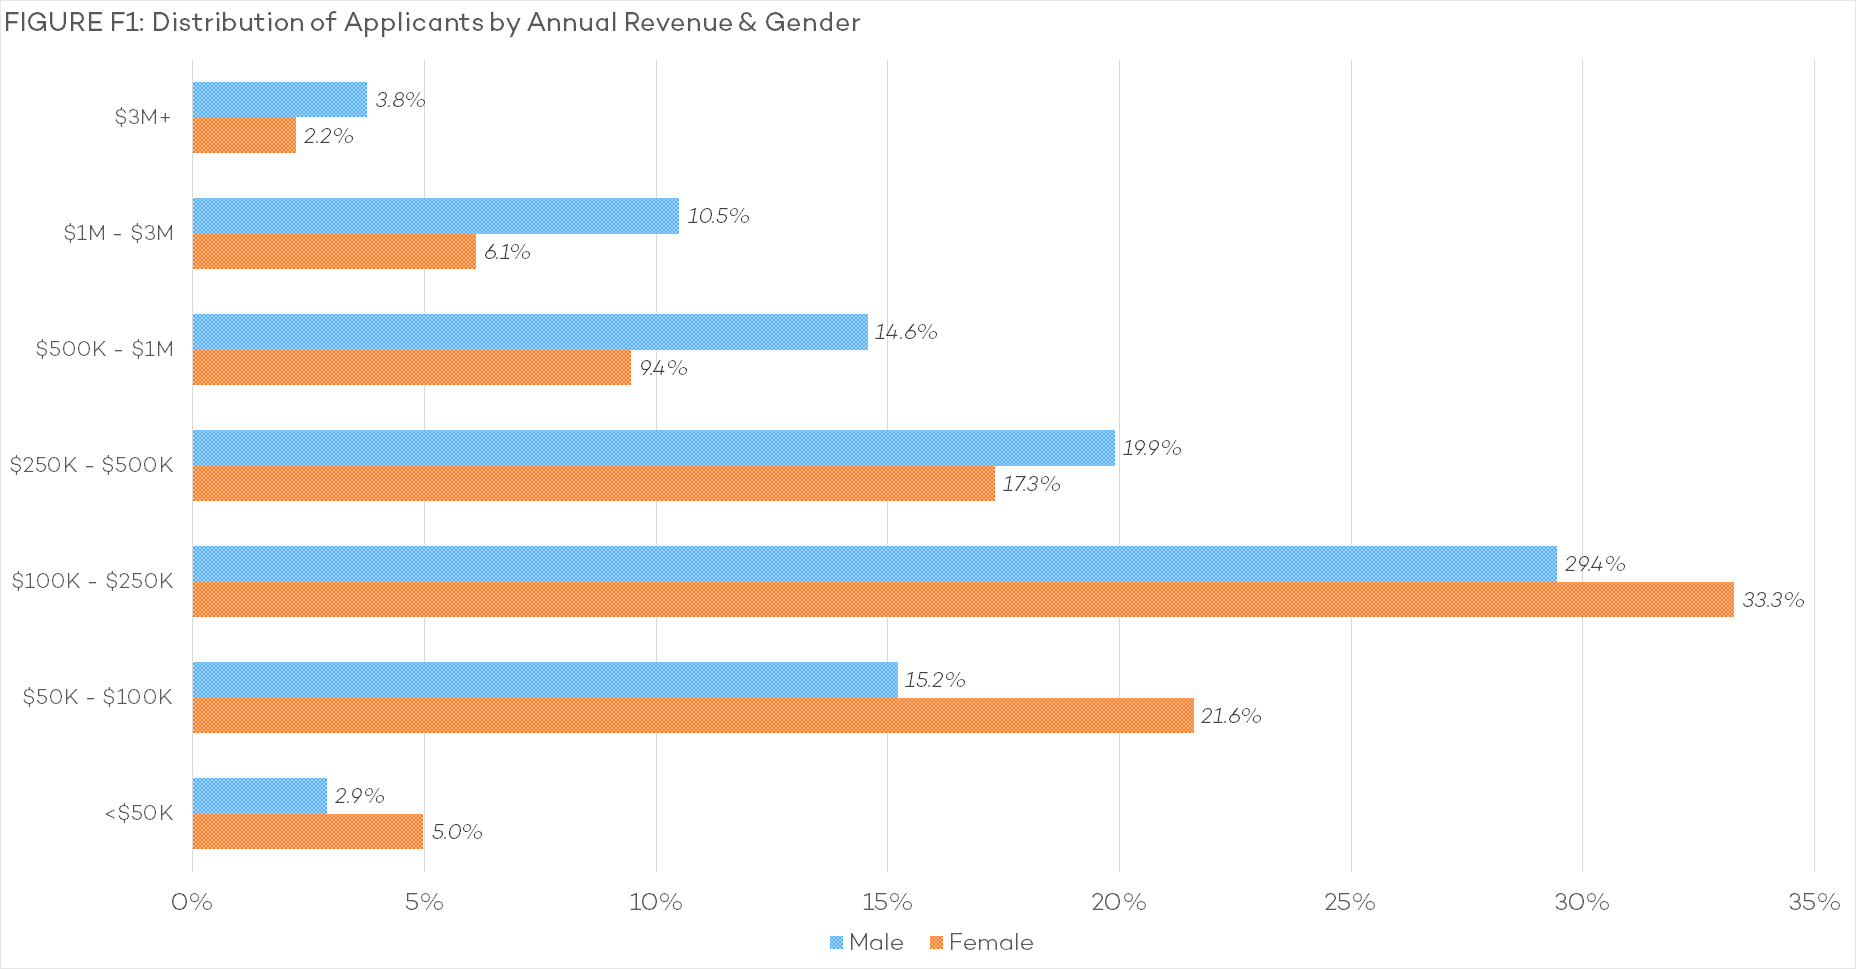 F1 - Distribution of Applicants by Annual Revenue & Gender